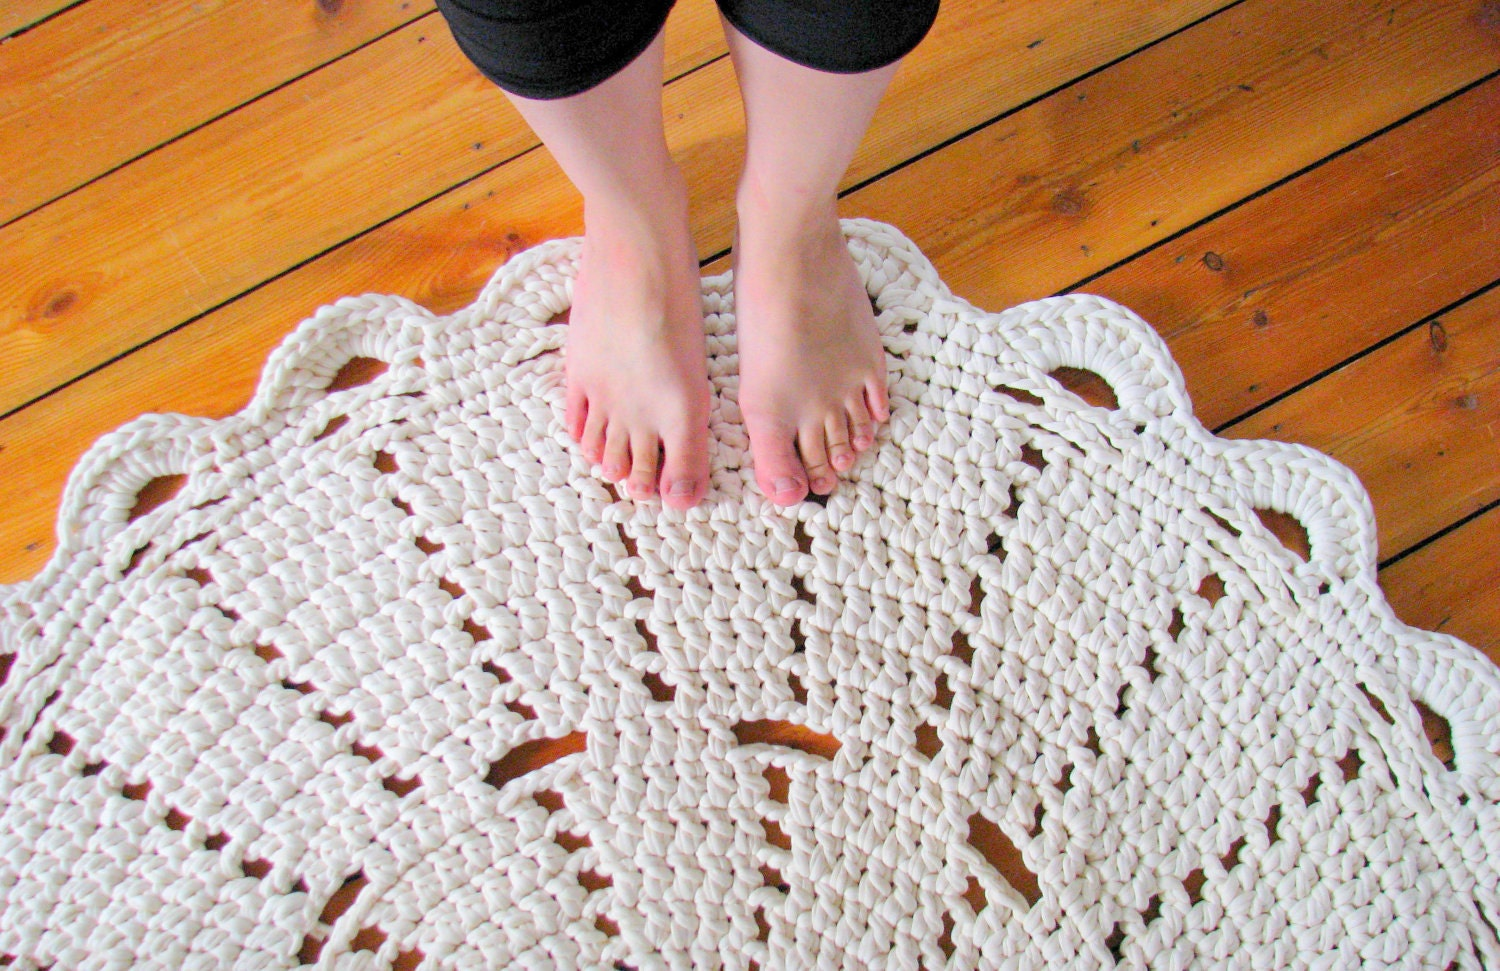 THREAD CROCHET DOILY PATTERNS ? Crochet For Beginners